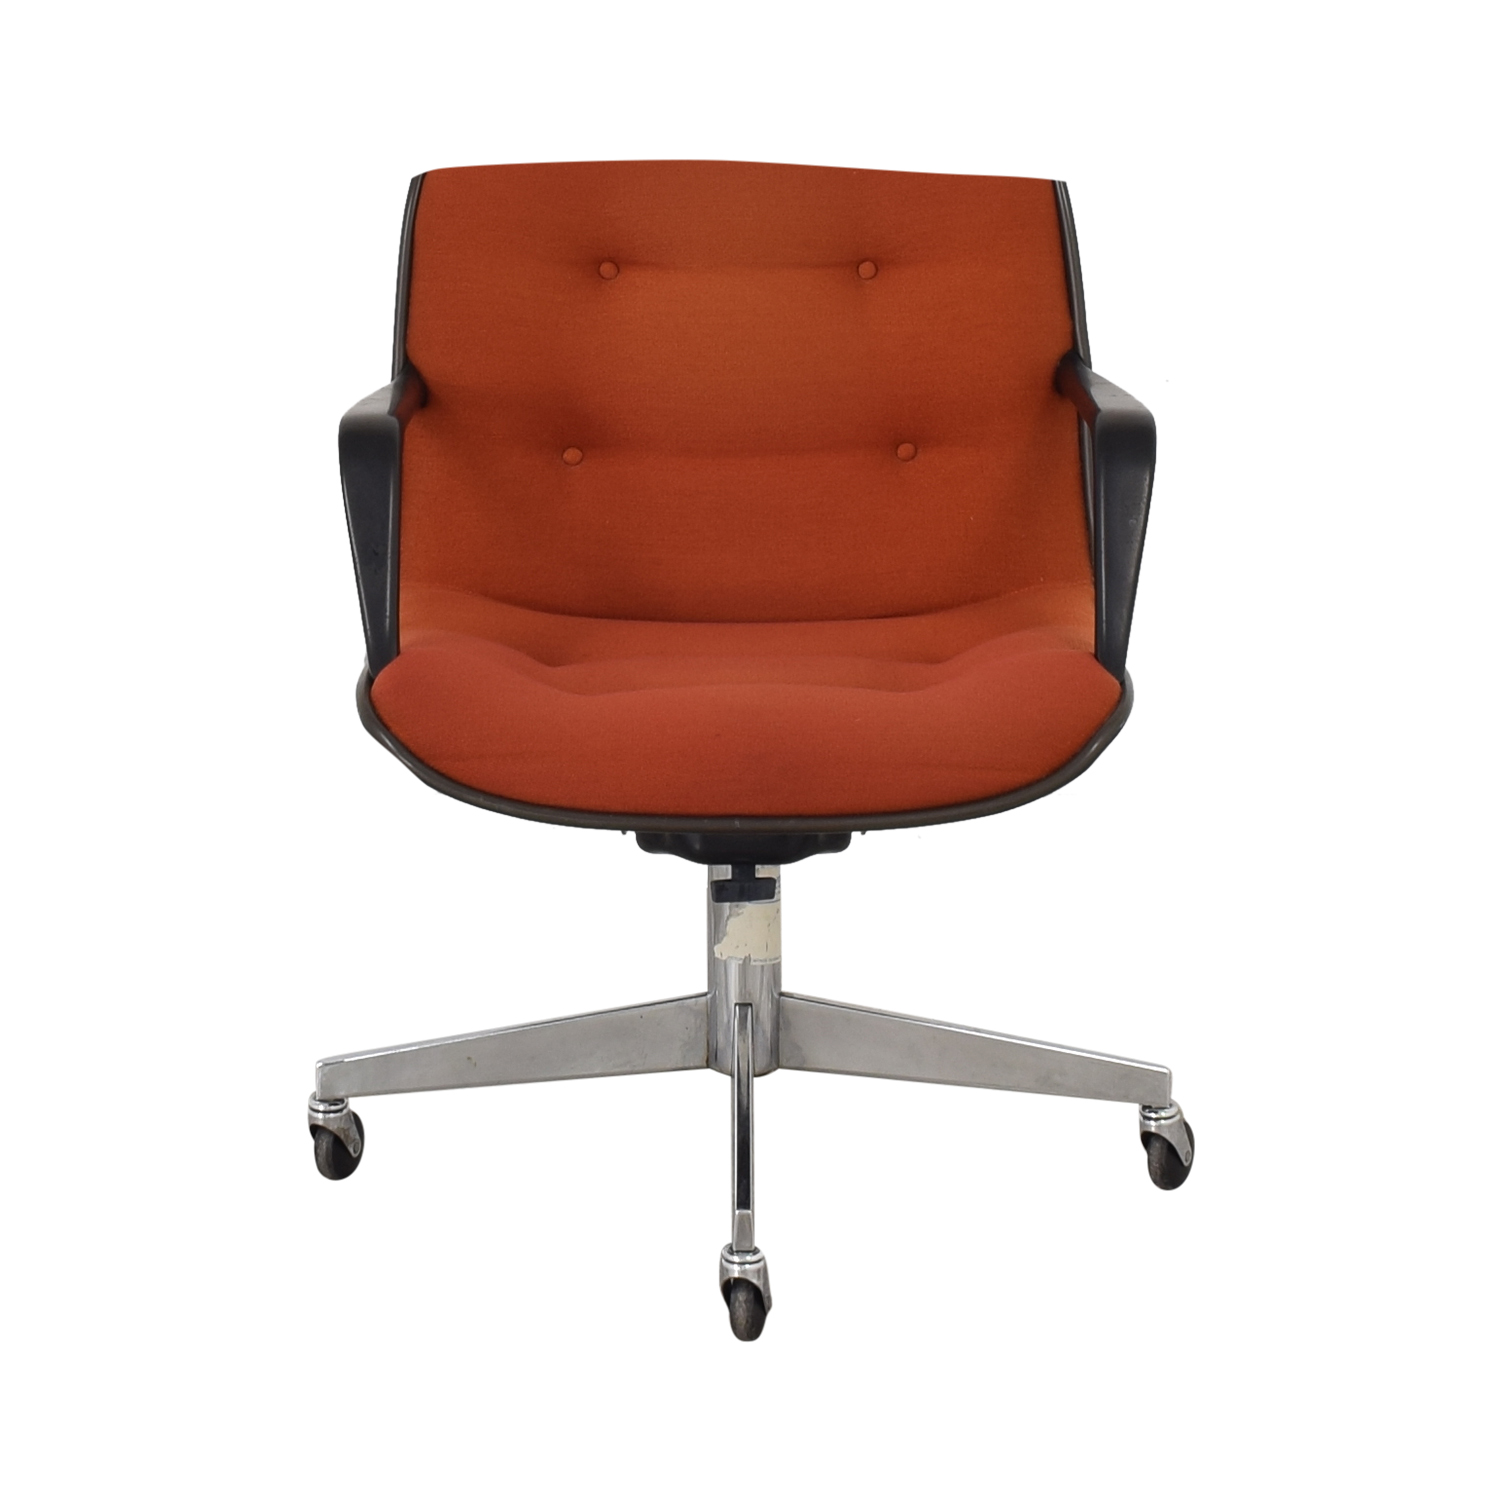 Steelcase Steelcase Mid Century Modern Office Chair nj